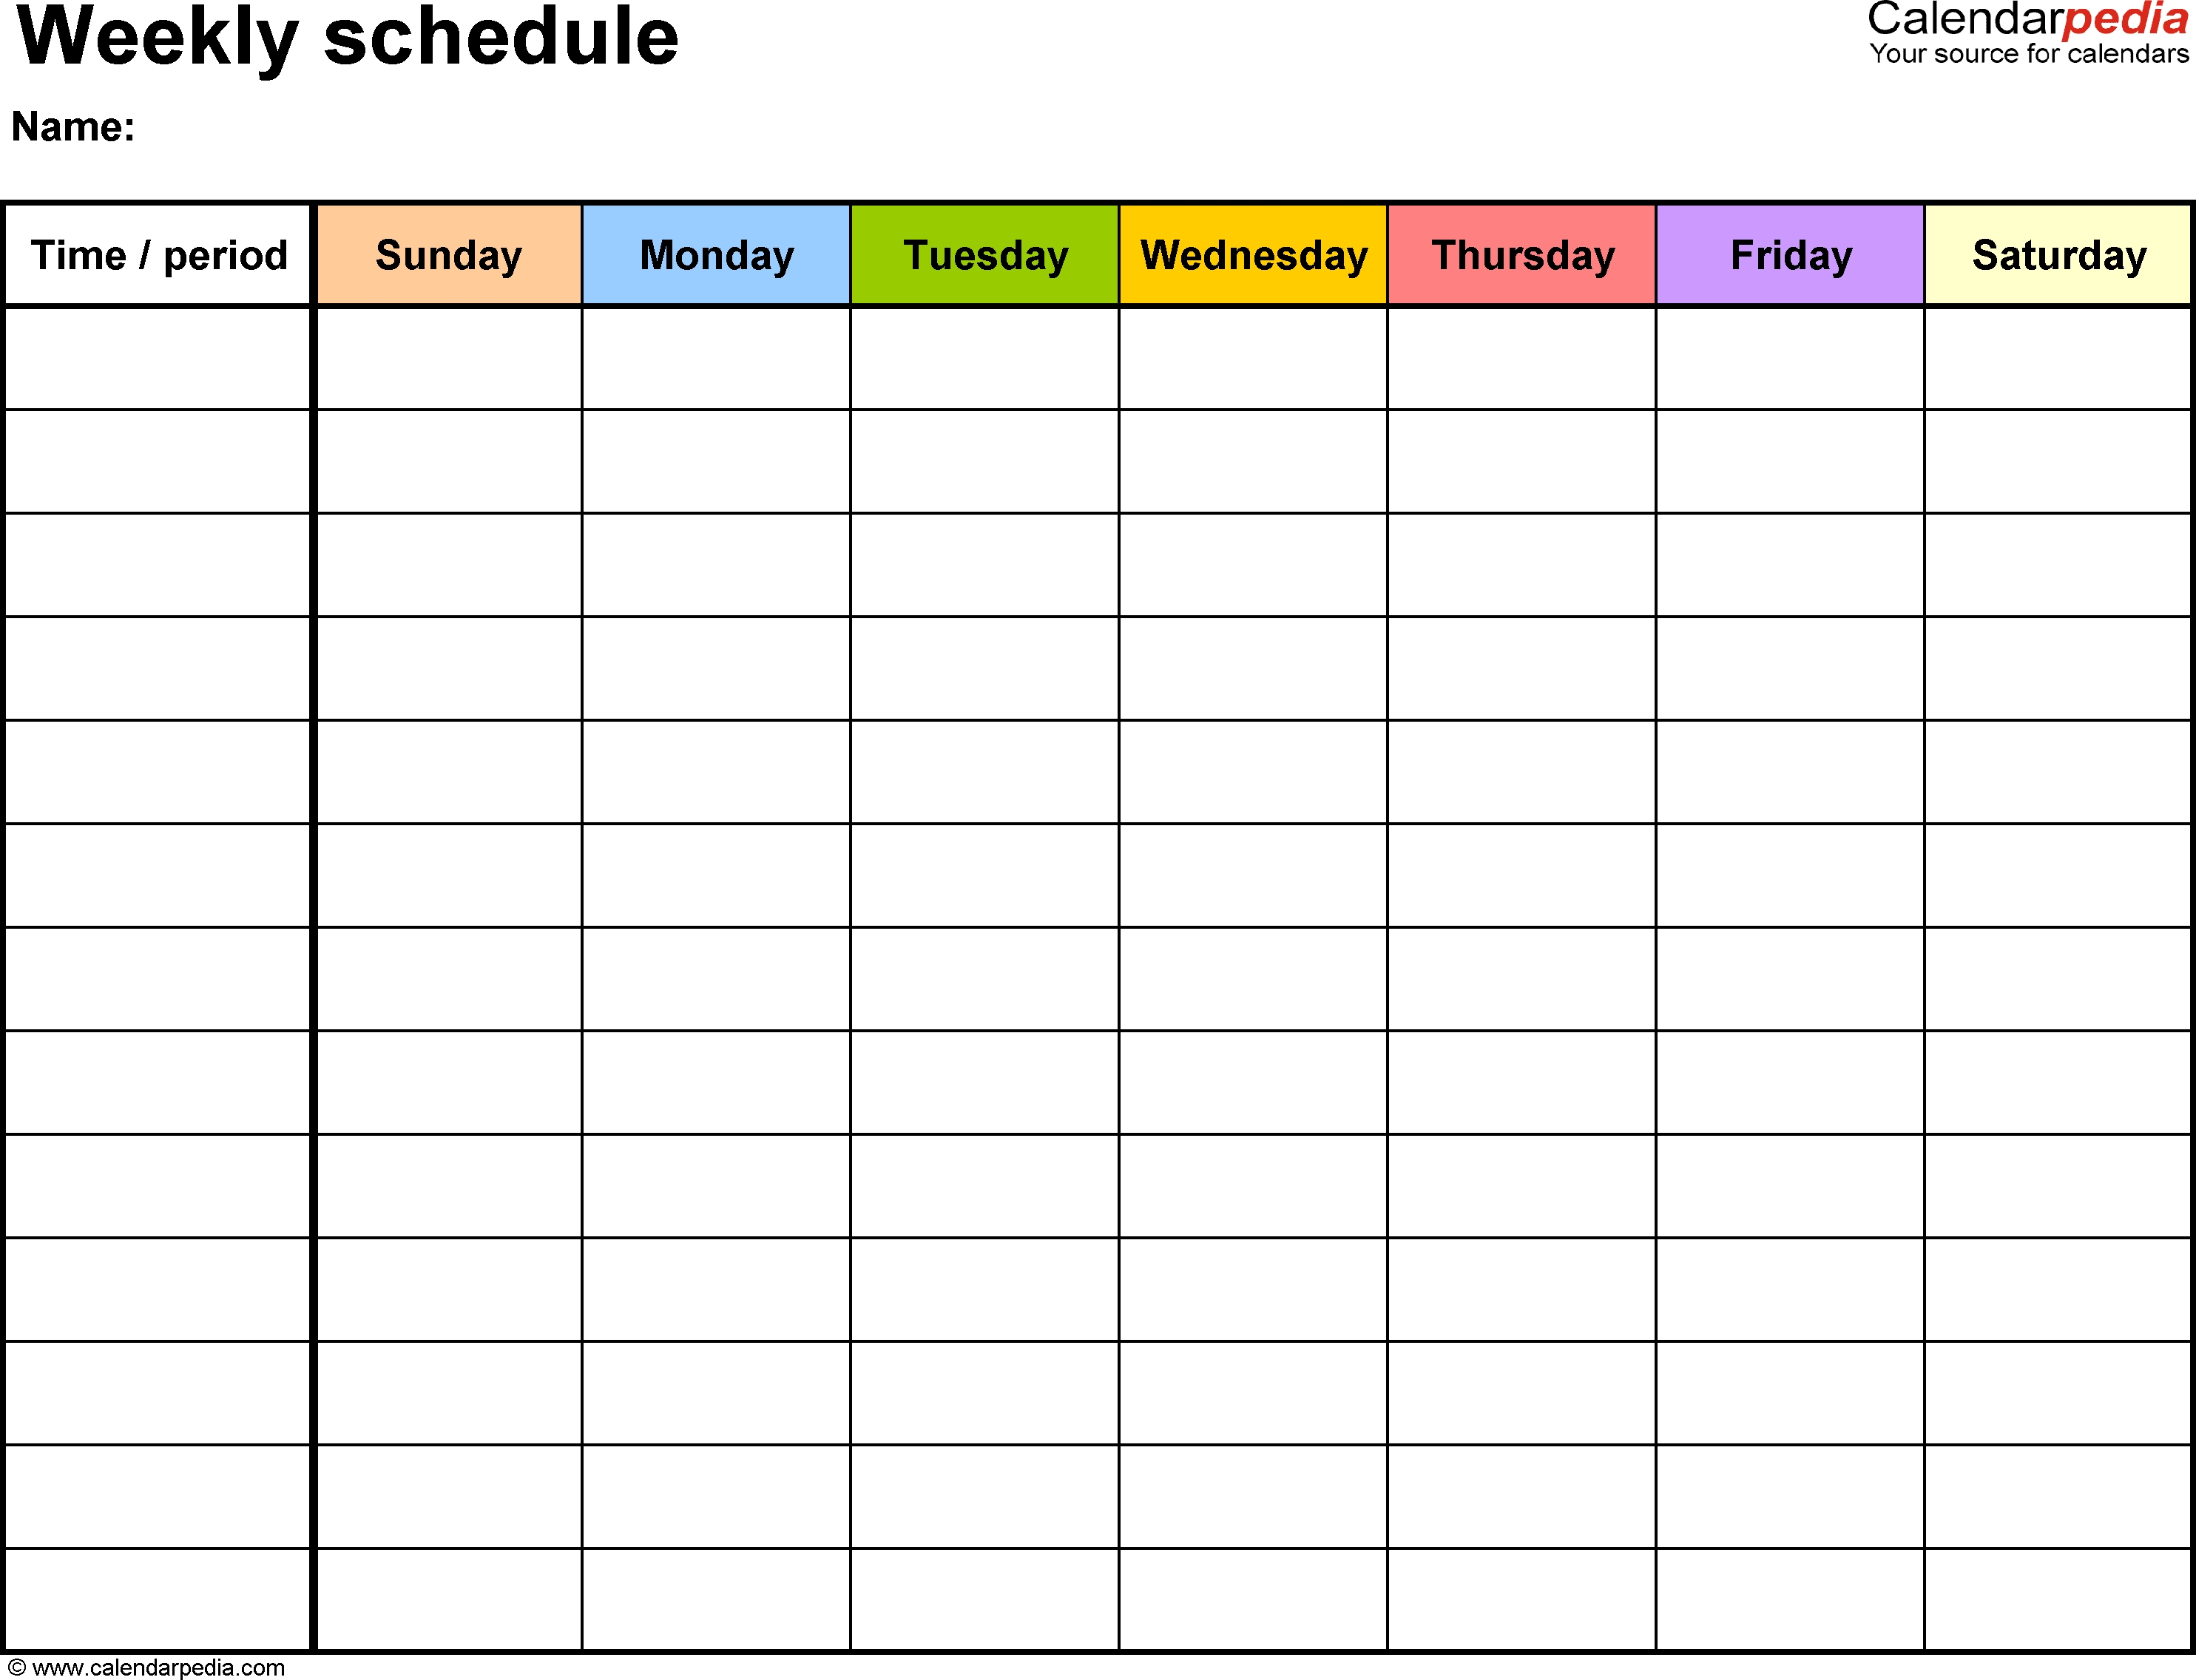 Free Weekly Schedule Templates For Word - 18 Templates pertaining to Week Template Monday Through Friday